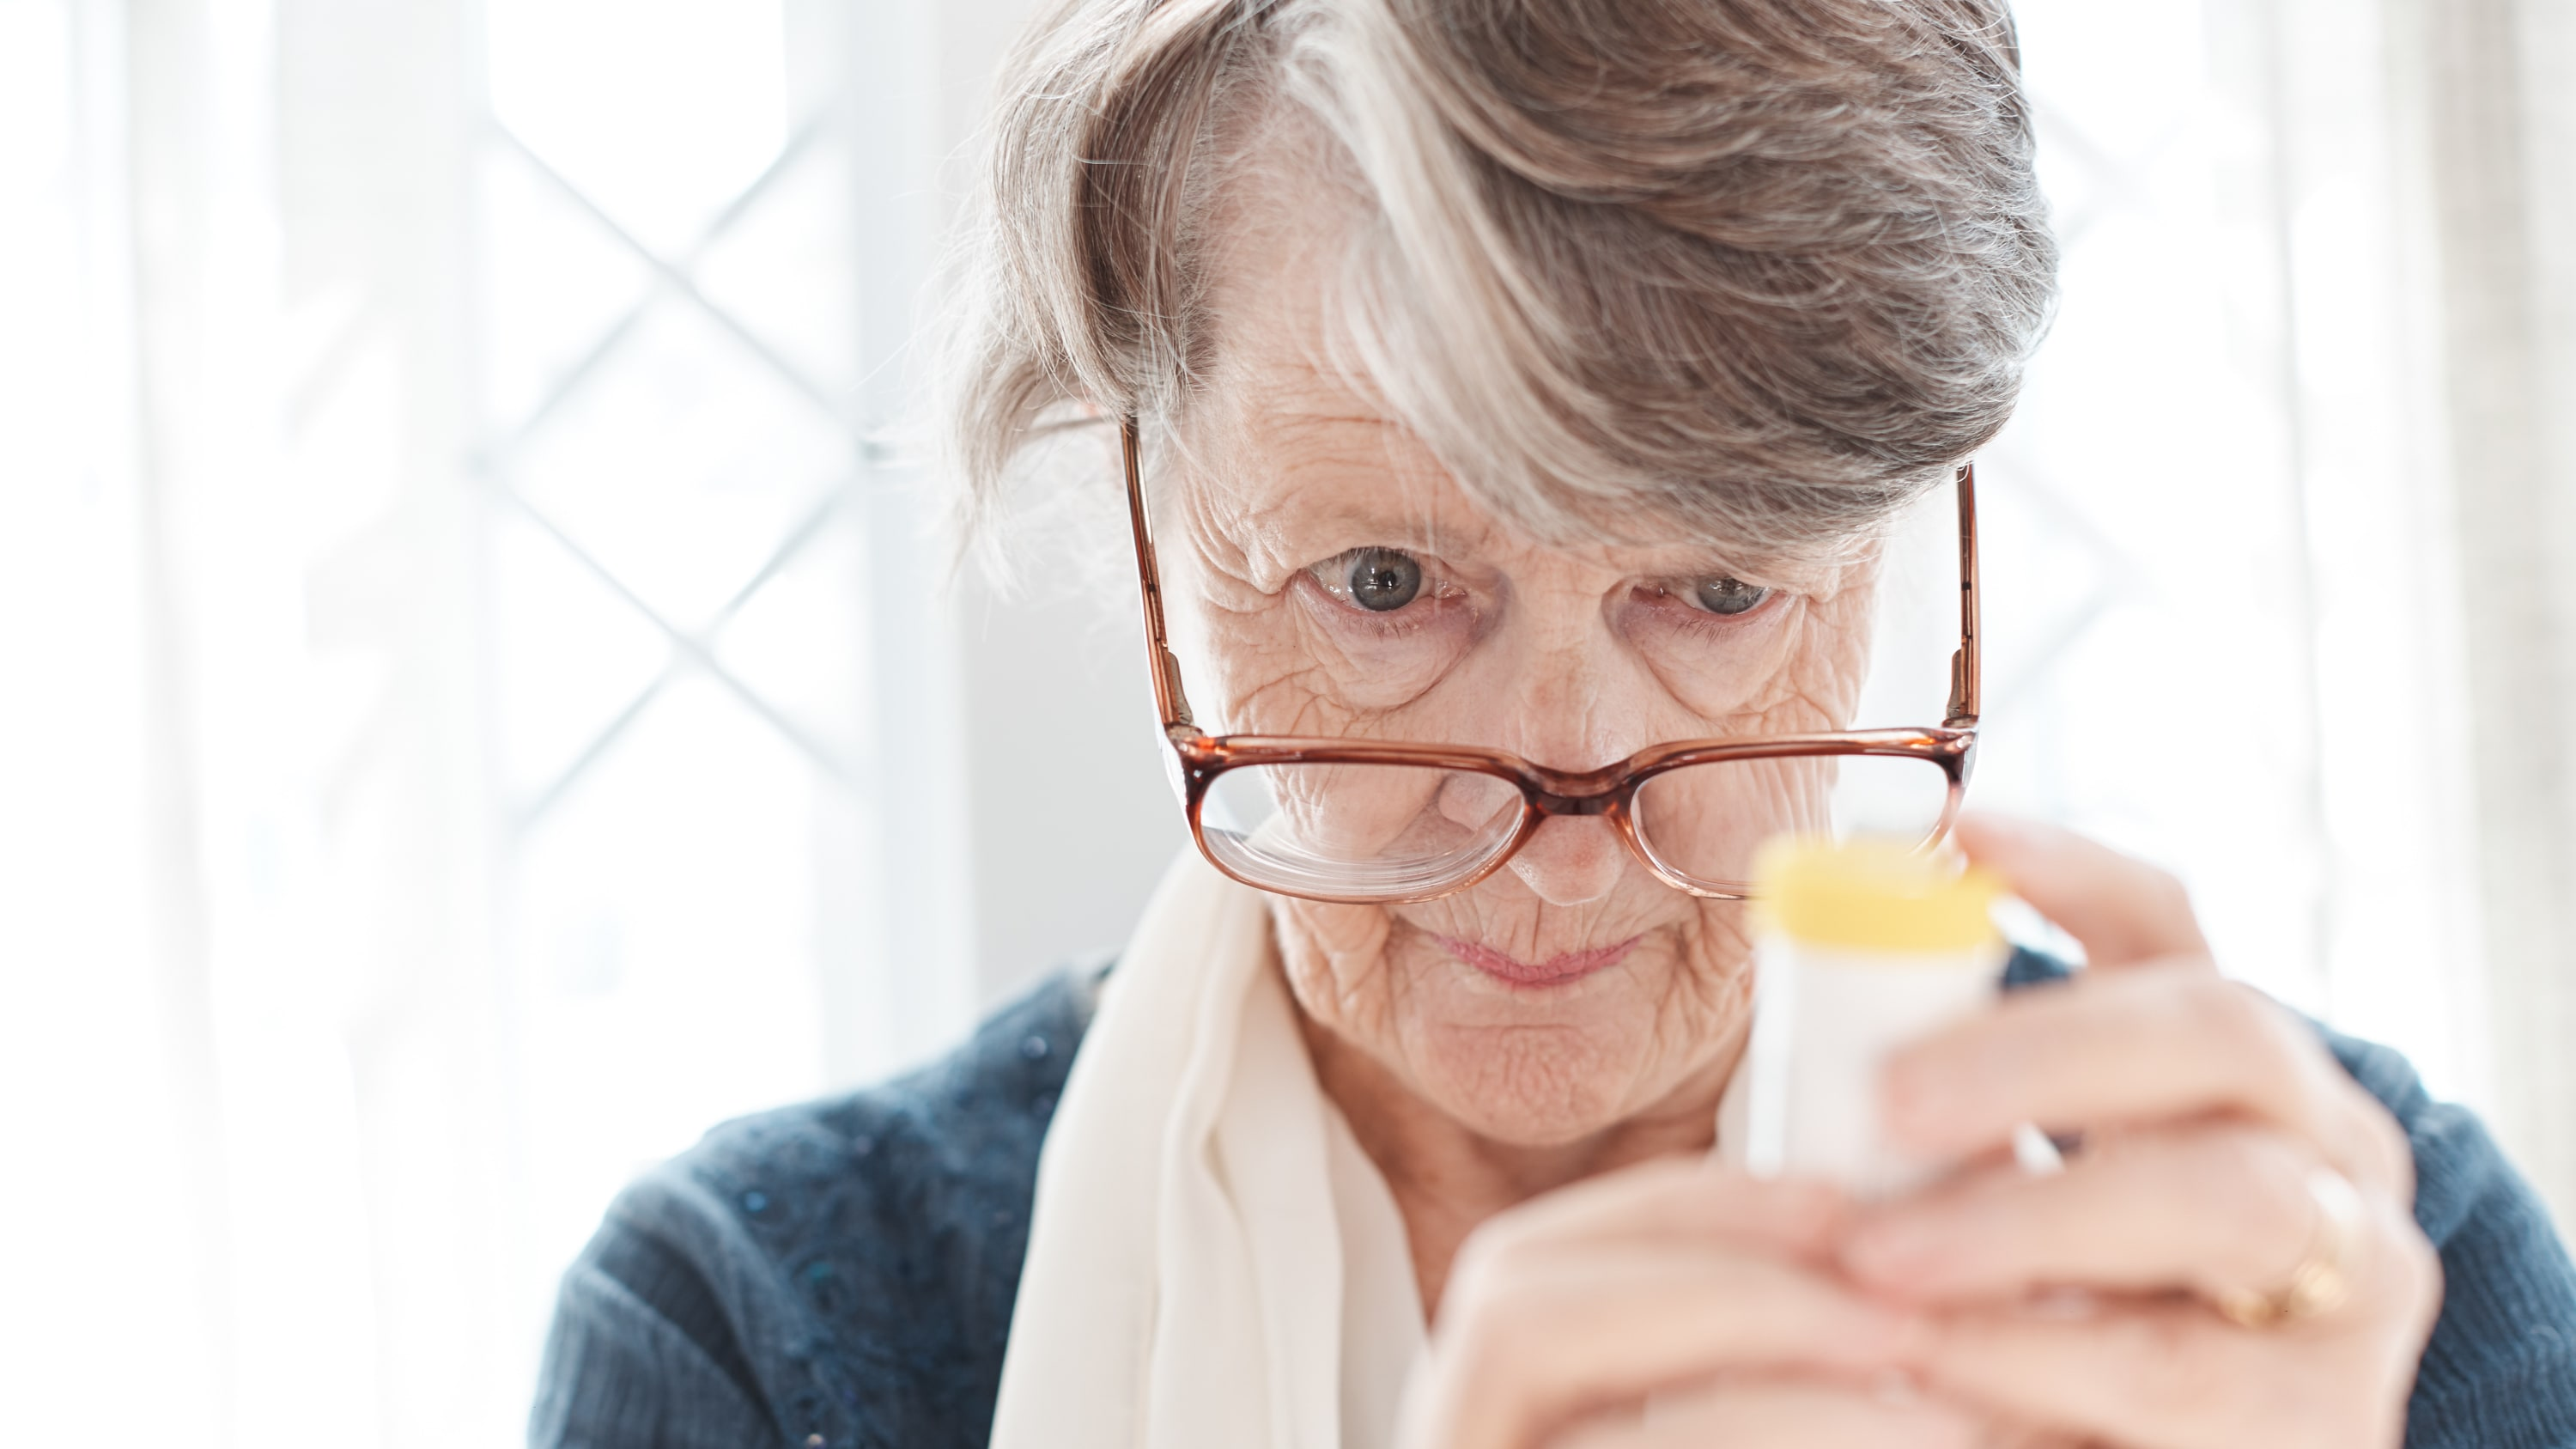 older woman trying to read prescription medication bottle